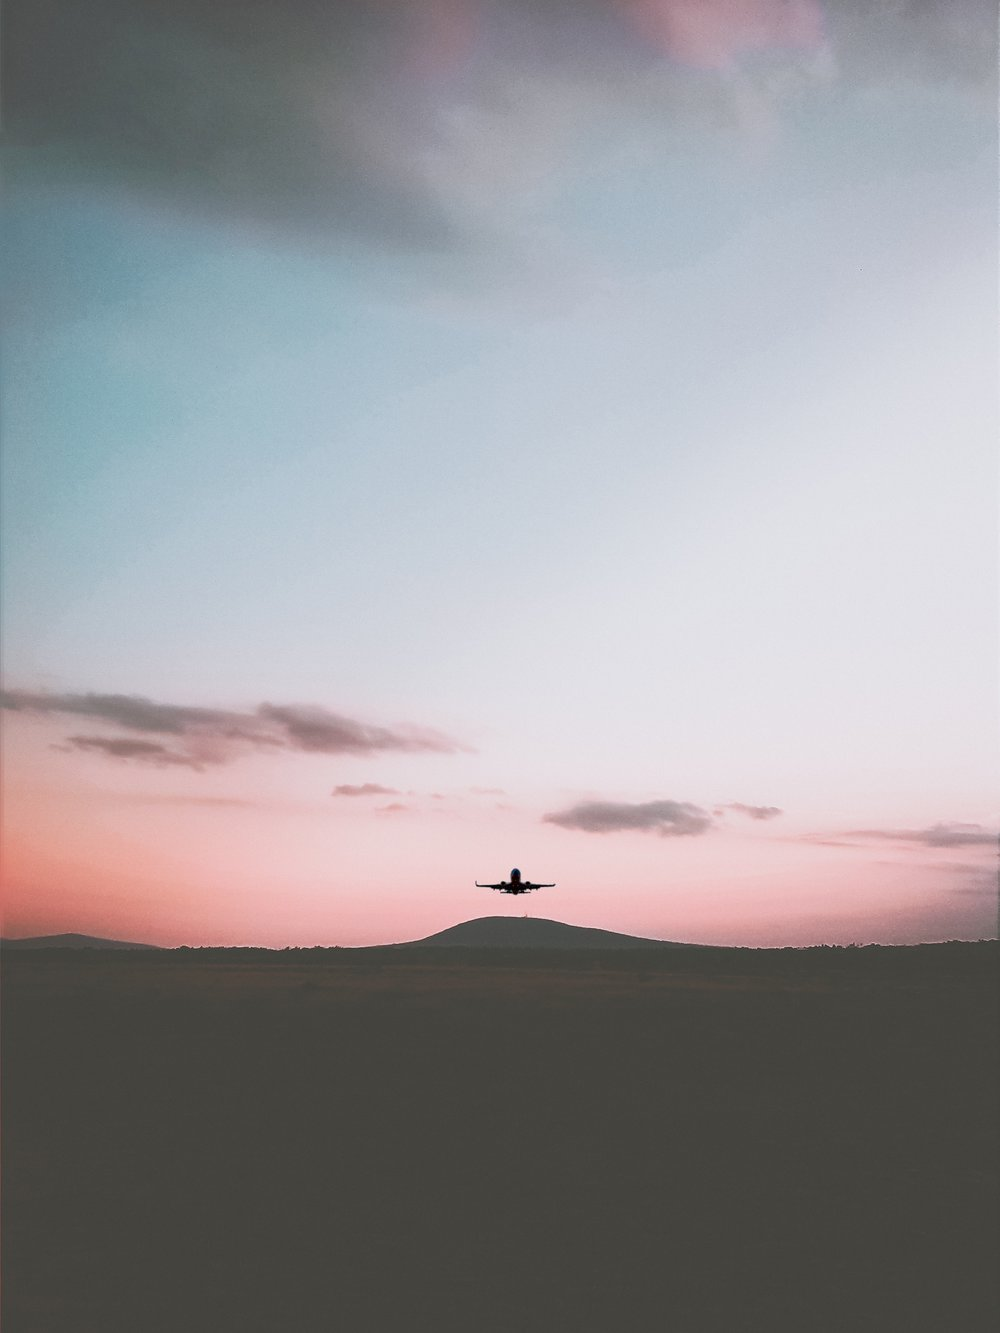 Photo by Shalom Mwenesi on Unsplash. Jetsetting